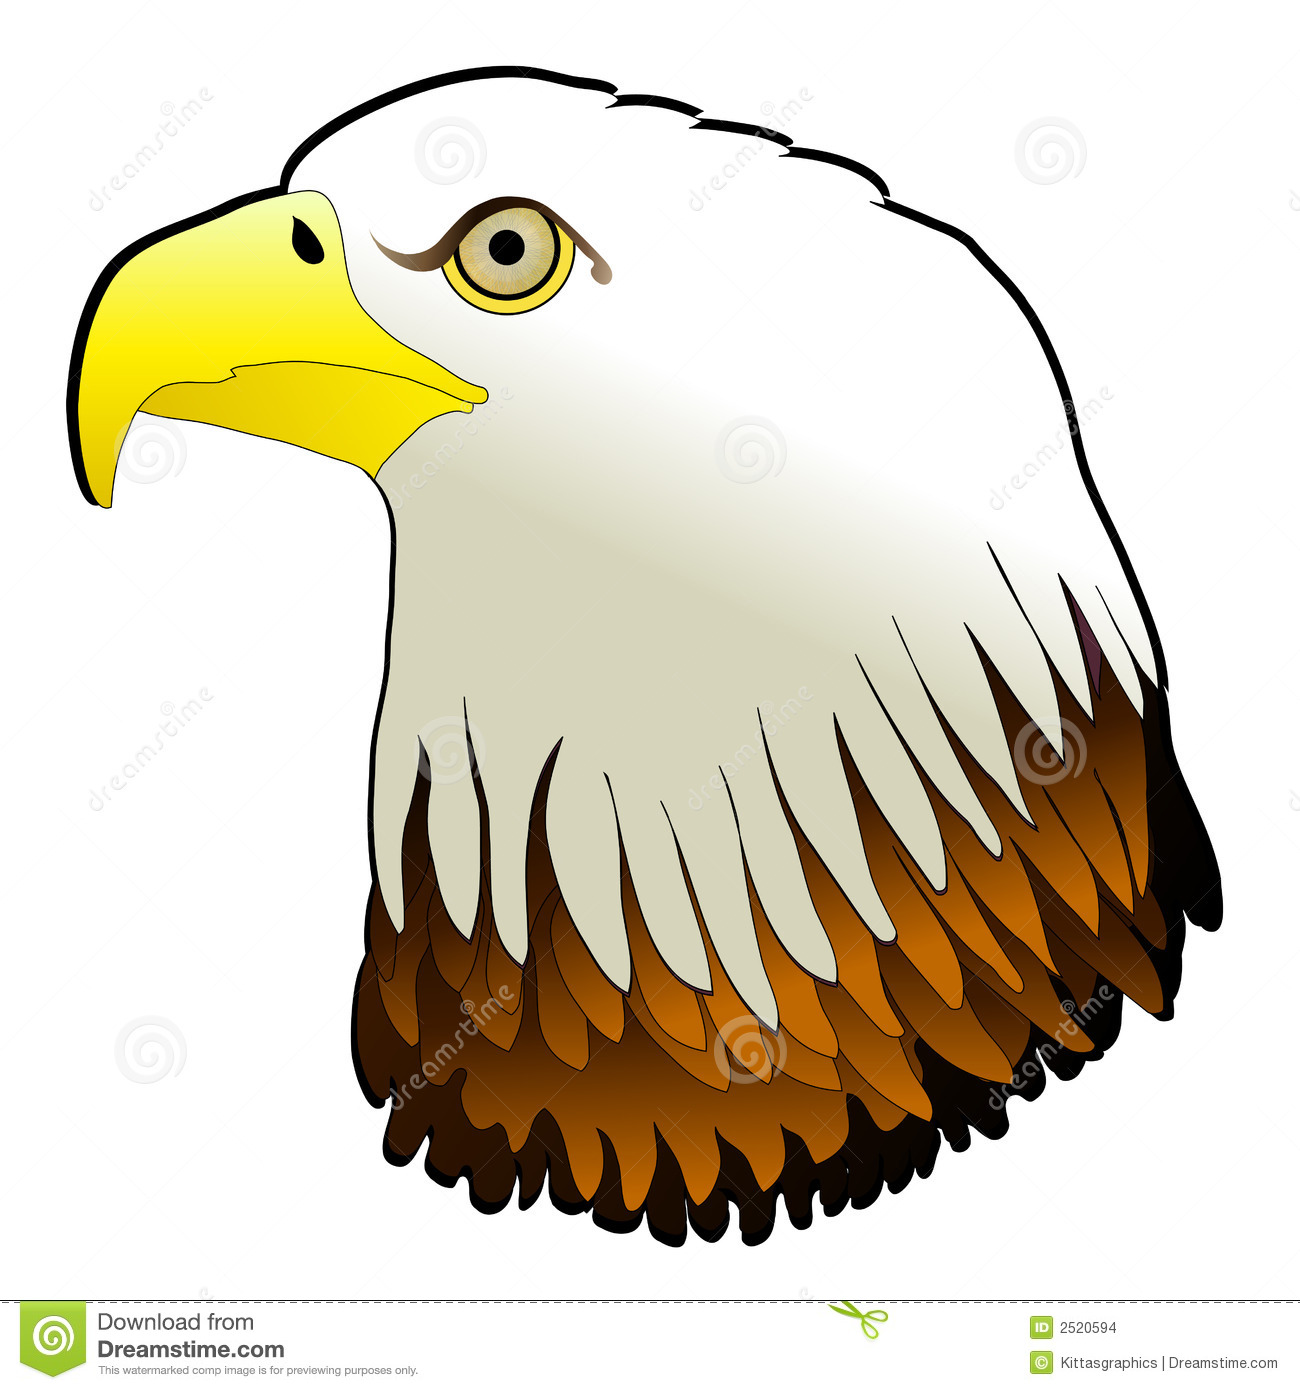 Eagle Clip Art With Raised Wings   Clipart Panda   Free Clipart Images